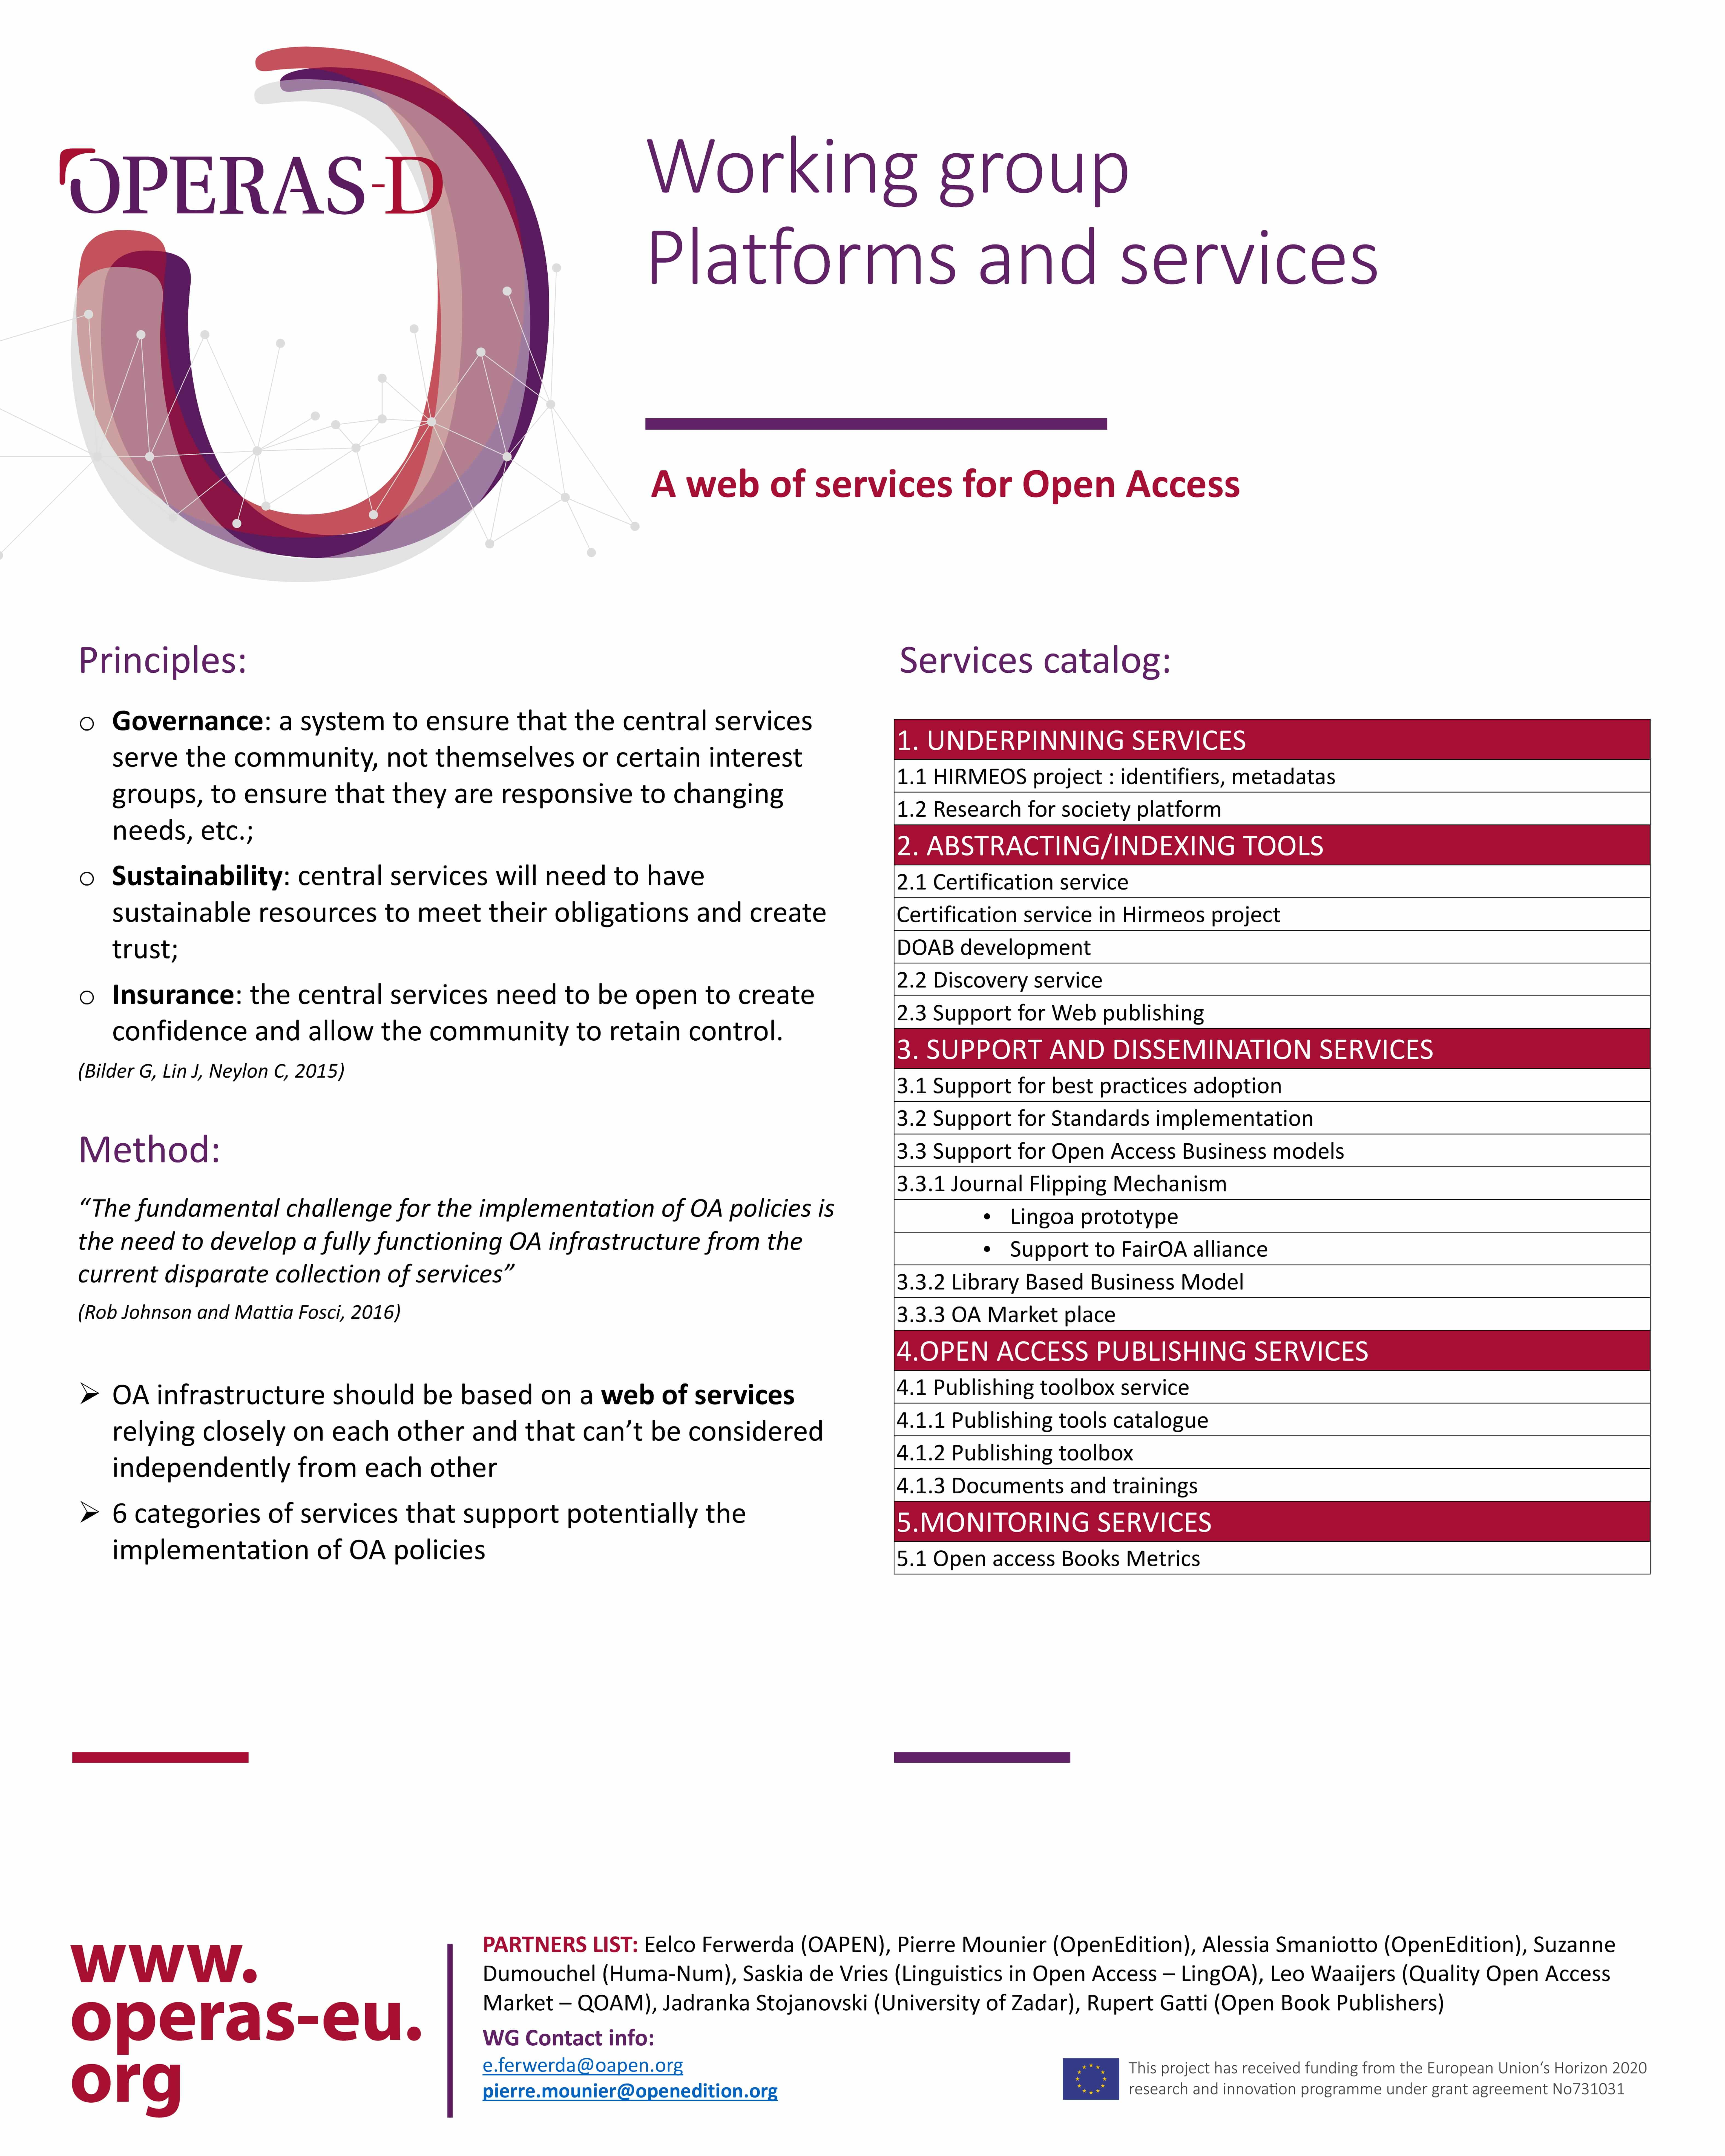 OPERAS Platforms and Services poster